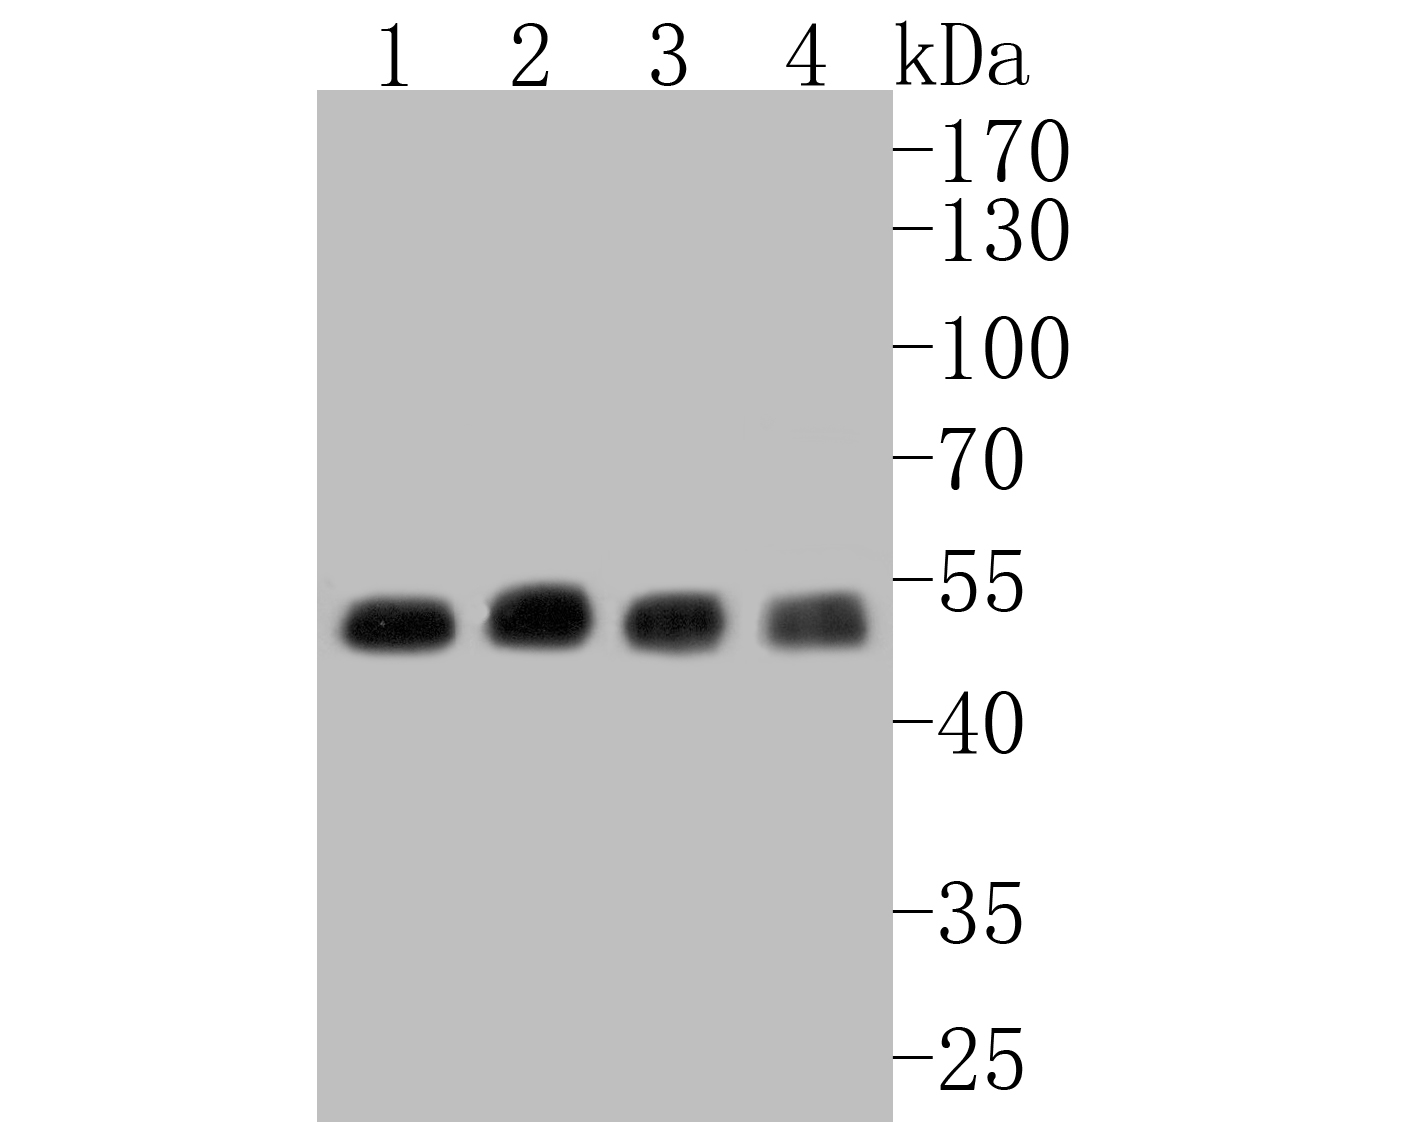 Western blot analysis of CHRNA3 on different lysates. Proteins were transferred to a PVDF membrane and blocked with 5% BSA in PBS for 1 hour at room temperature. The primary antibody (ER1902-13, 1/500) was used in 5% BSA at room temperature for 2 hours. Goat Anti-Rabbit IgG - HRP Secondary Antibody (HA1001) at 1:5,000 dilution was used for 1 hour at room temperature.<br /> Positive control: <br /> Lane 1: SH-SY5Y cell lysate<br /> Lane 2: Hela cell lysate<br /> Lane 3: human stomach tissue lysate<br /> Lane 4: rat brain tissue lysate